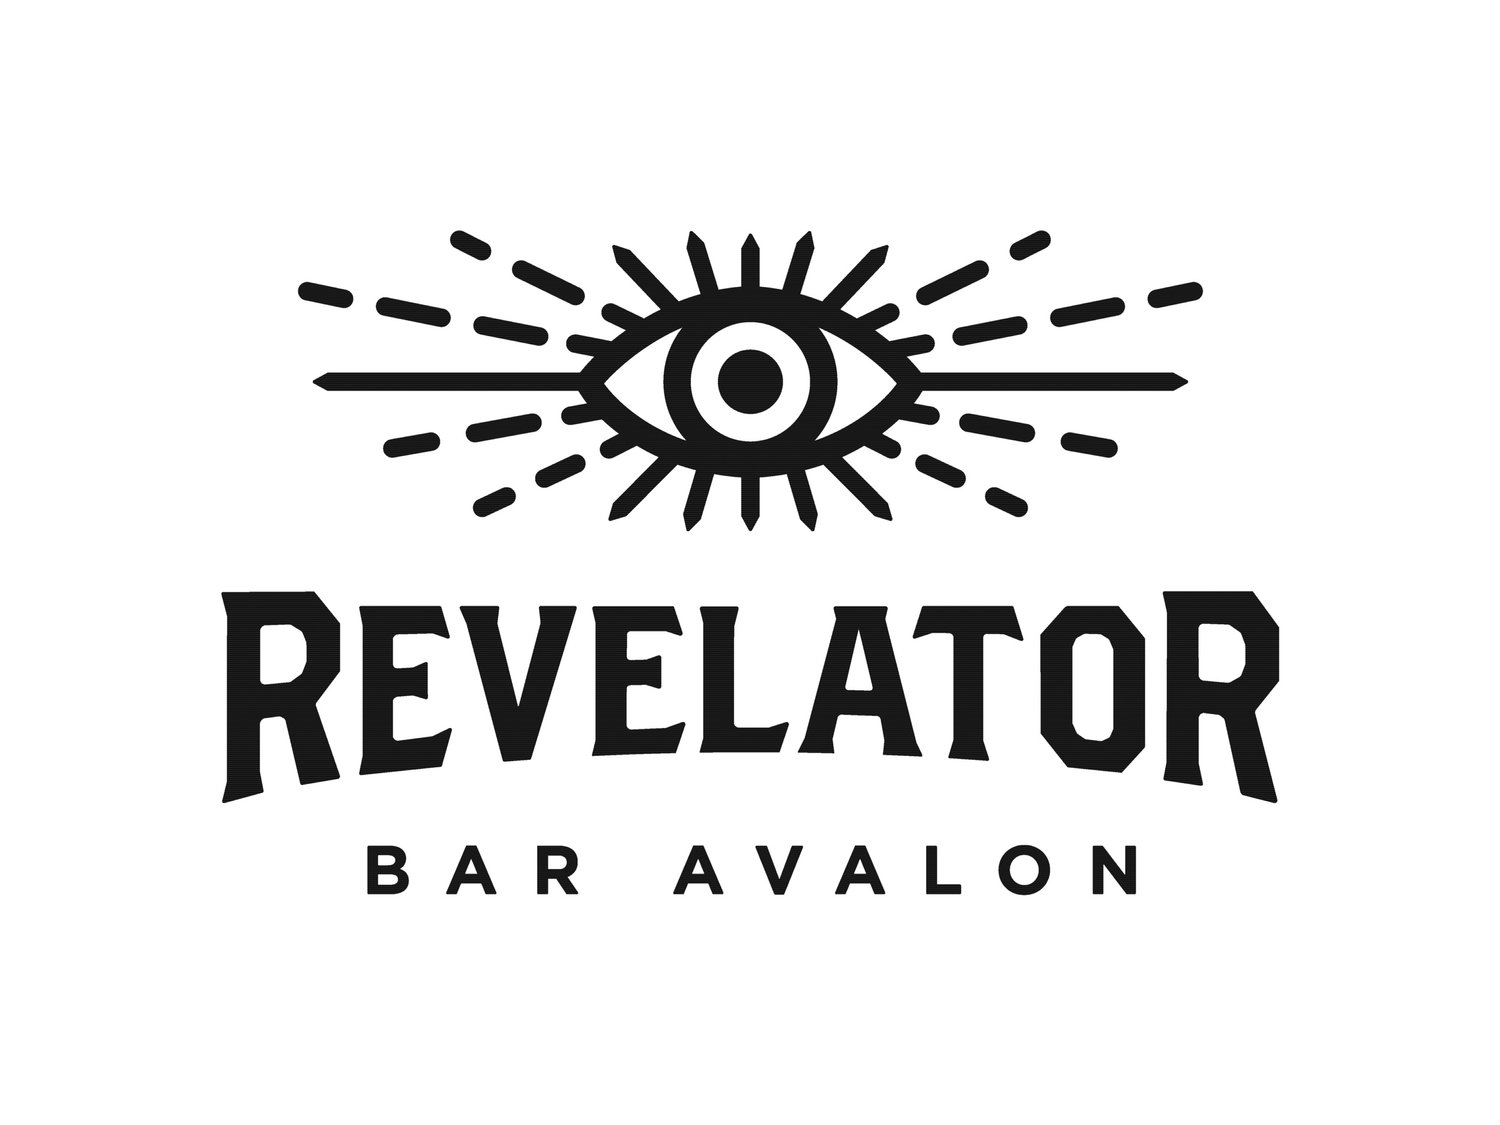 Revelator: Bar Avalon